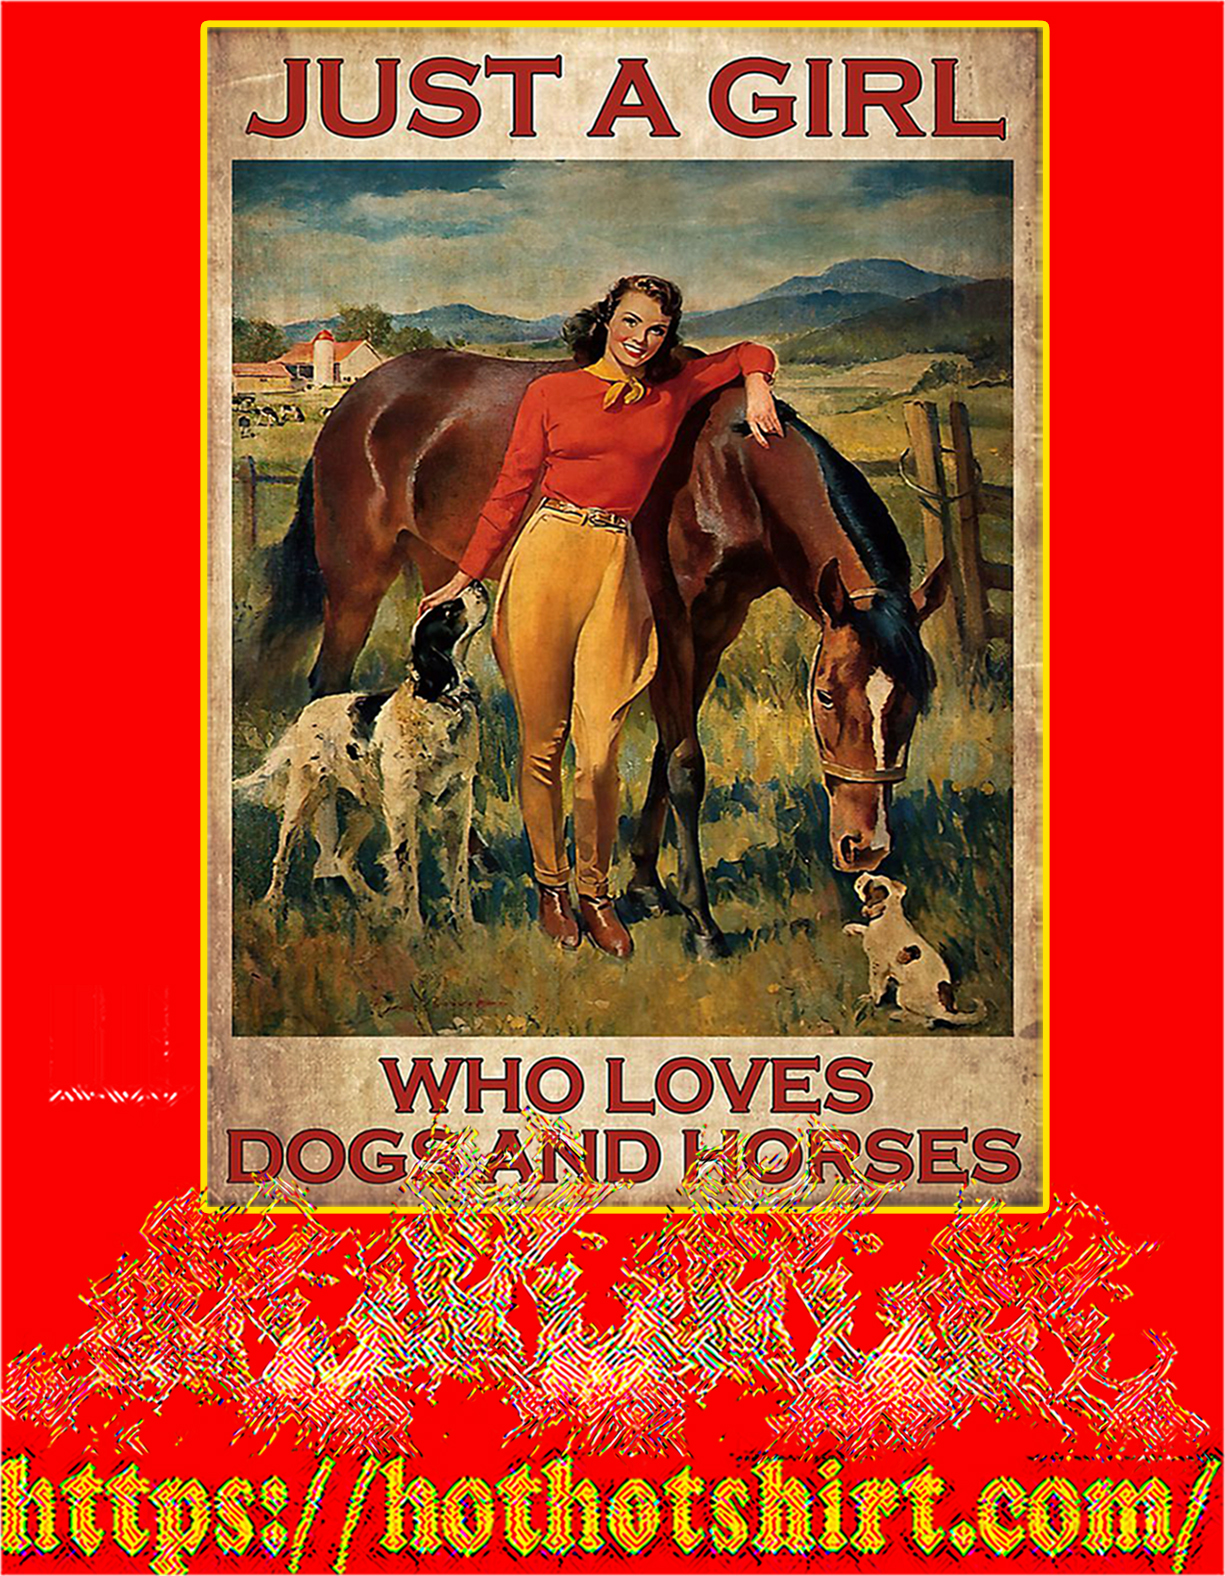 Just a girl who loves dogs and horses poster - A4